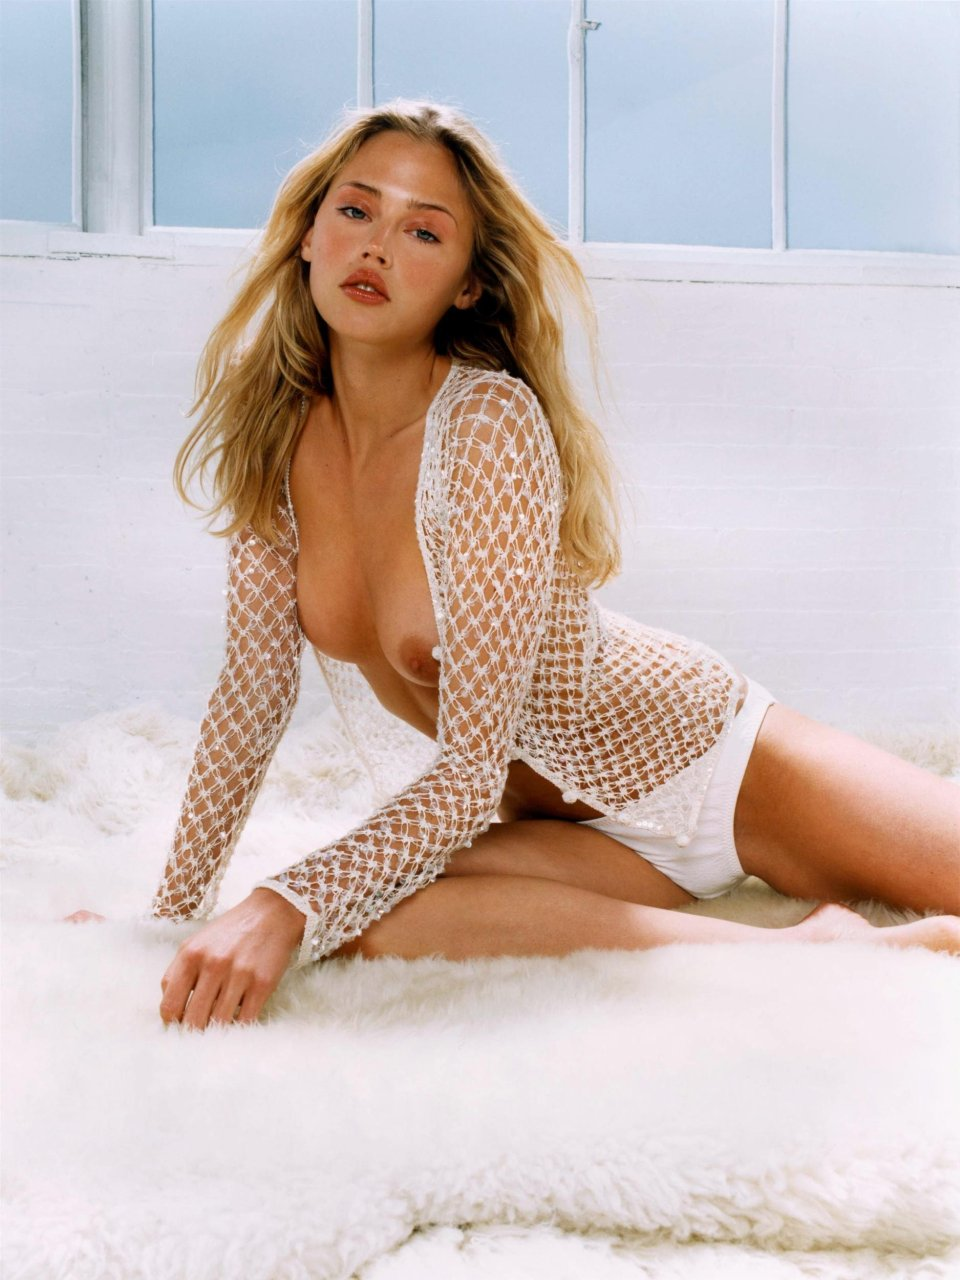 Cheaply got, Estella warren nude porn something